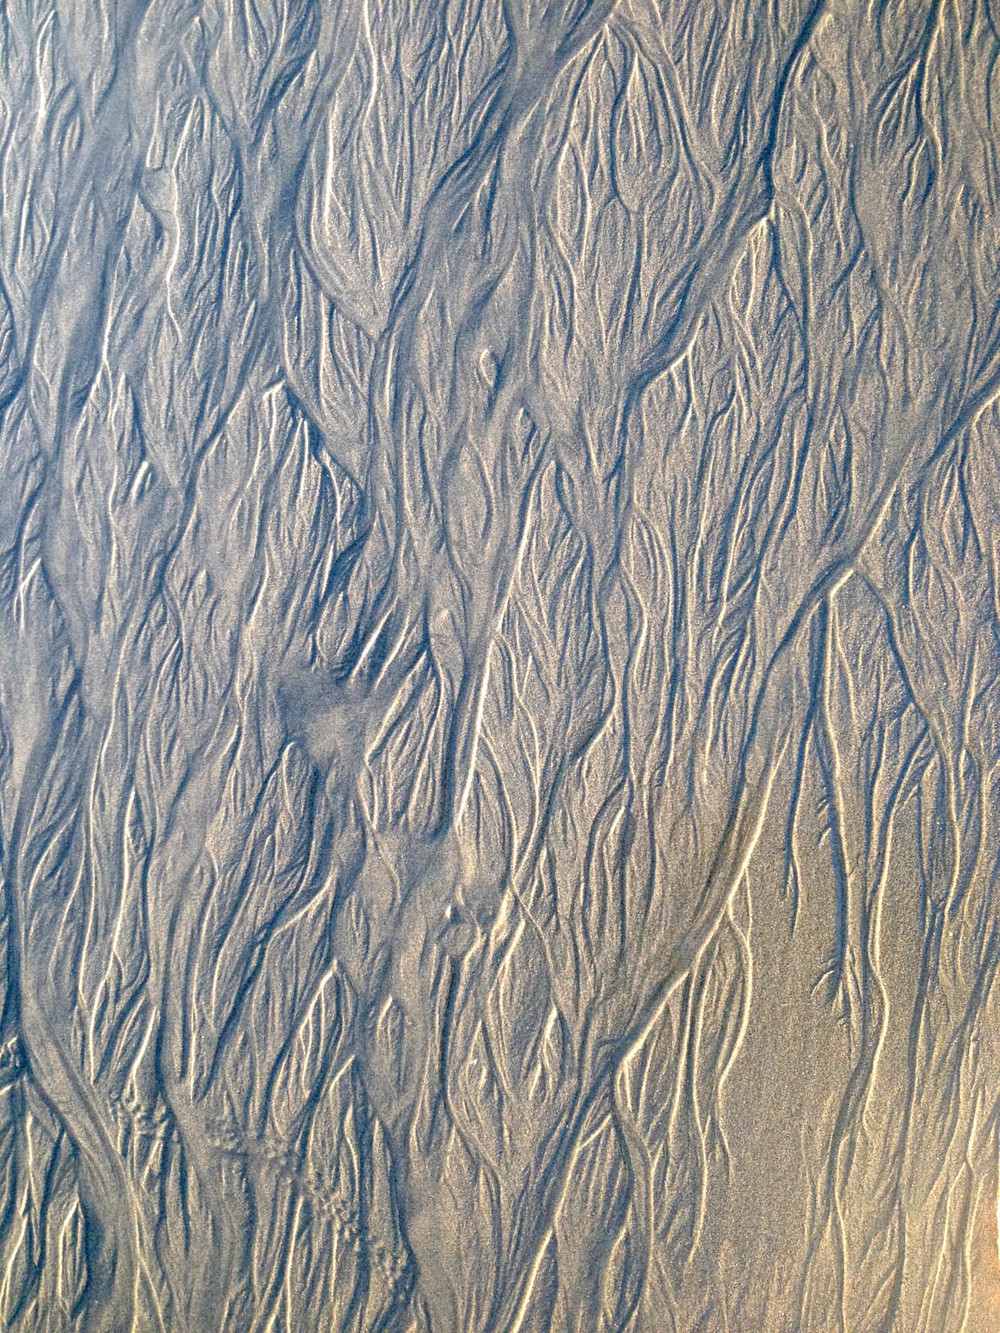 Sand lines with golden hour lighting.